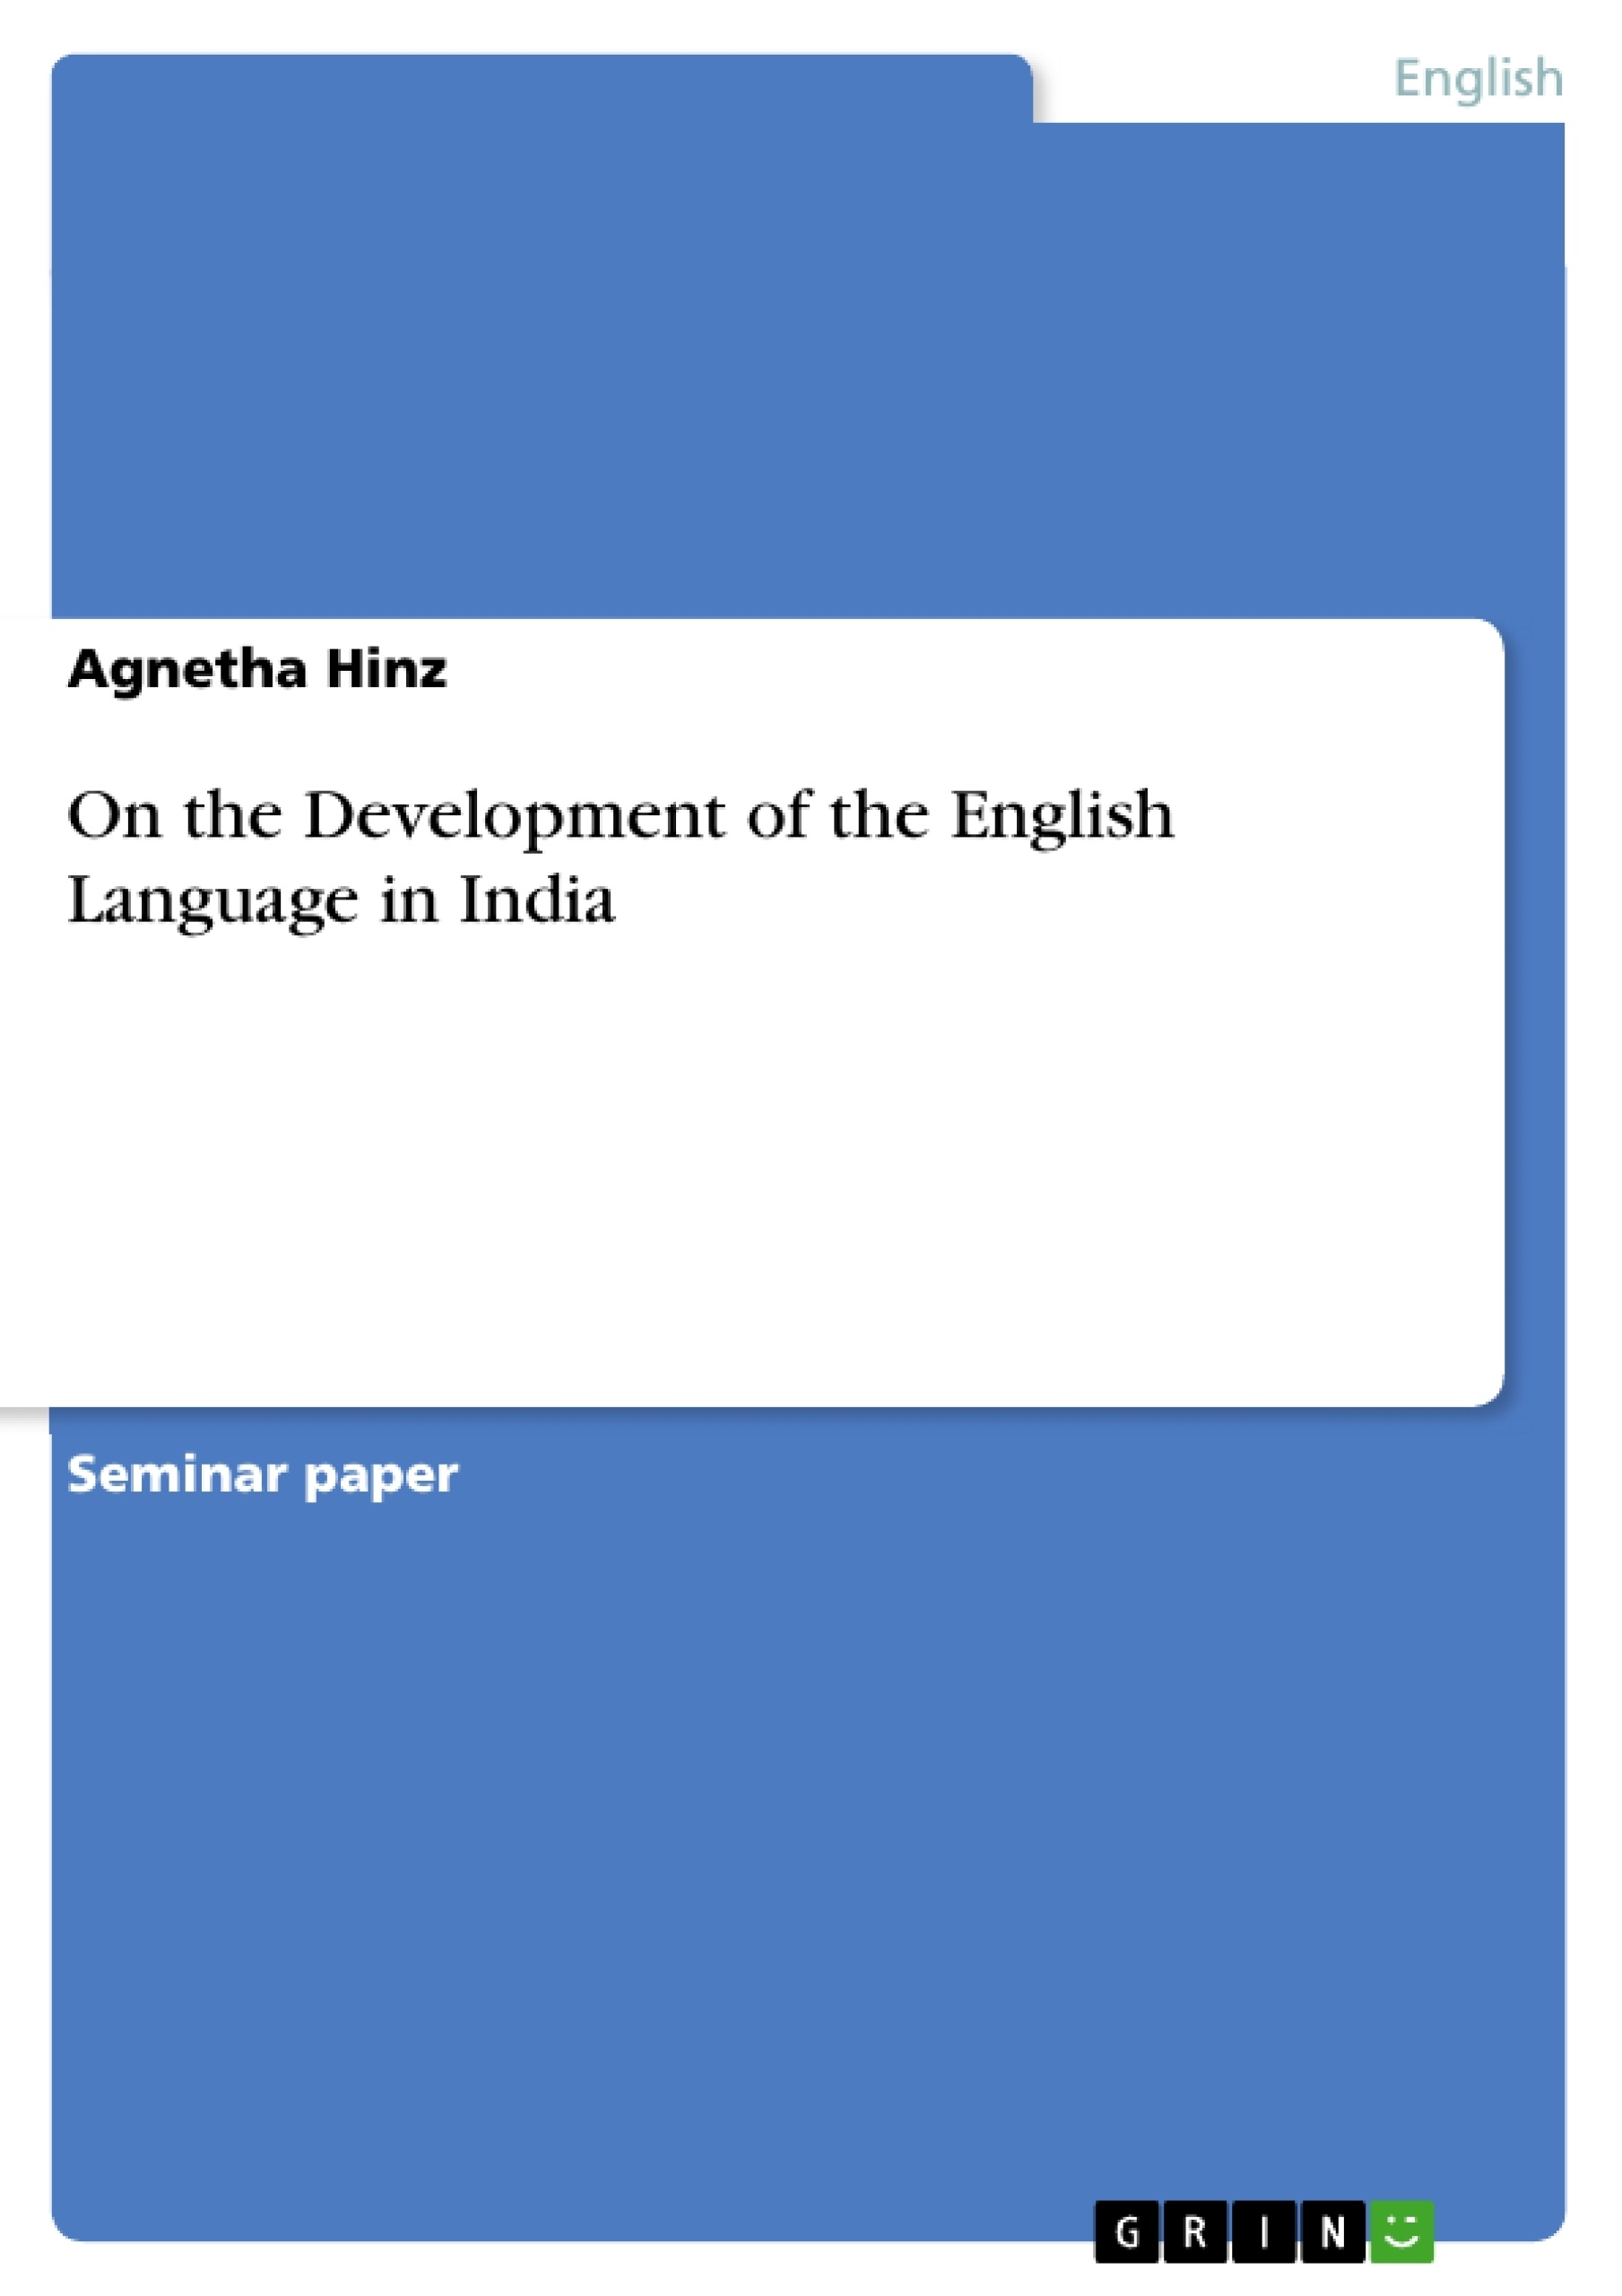 Dissertations for English As a Second Language Education